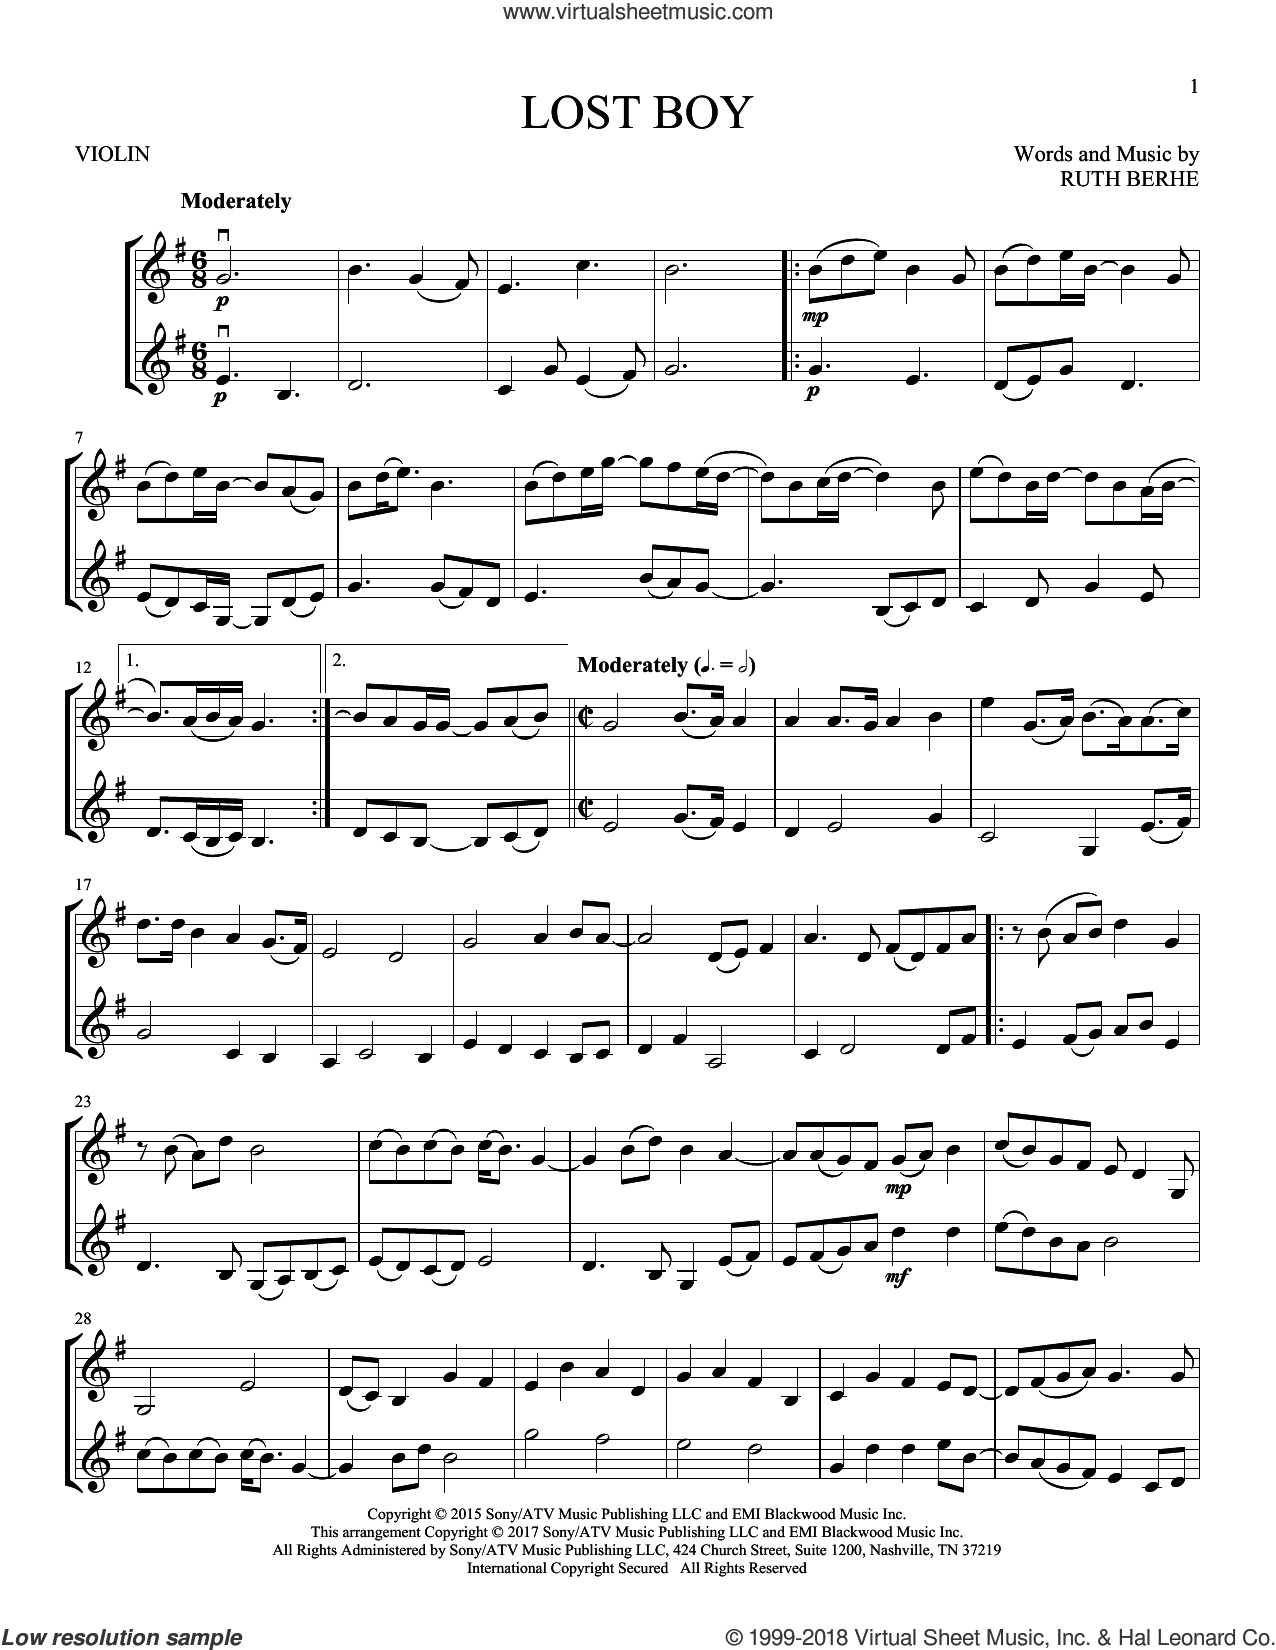 Lost Boy sheet music for two violins (duets, violin duets) by Ruth B and Ruth Berhe, intermediate skill level